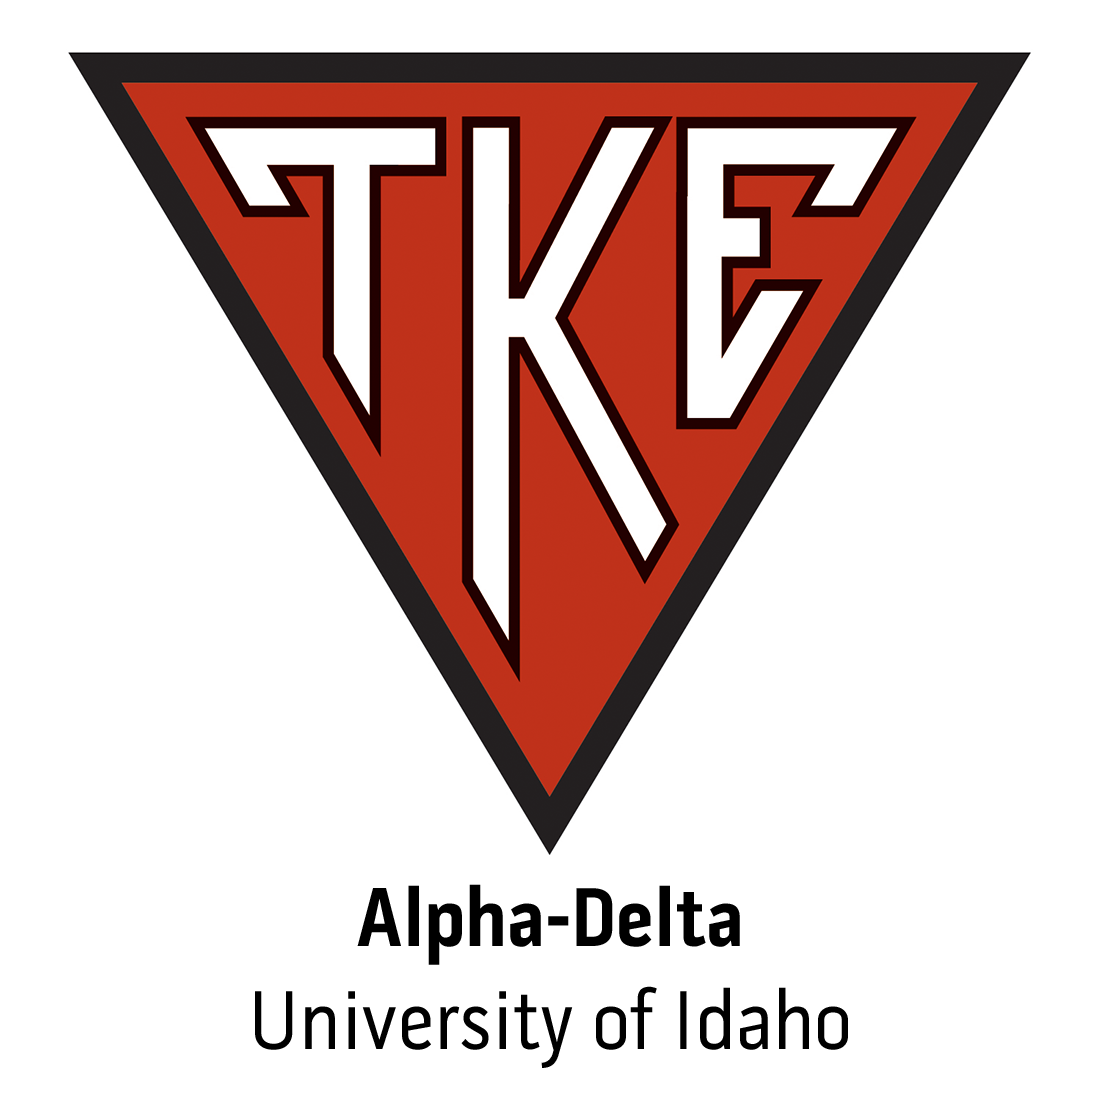 Alpha-Delta Colony at University of Idaho